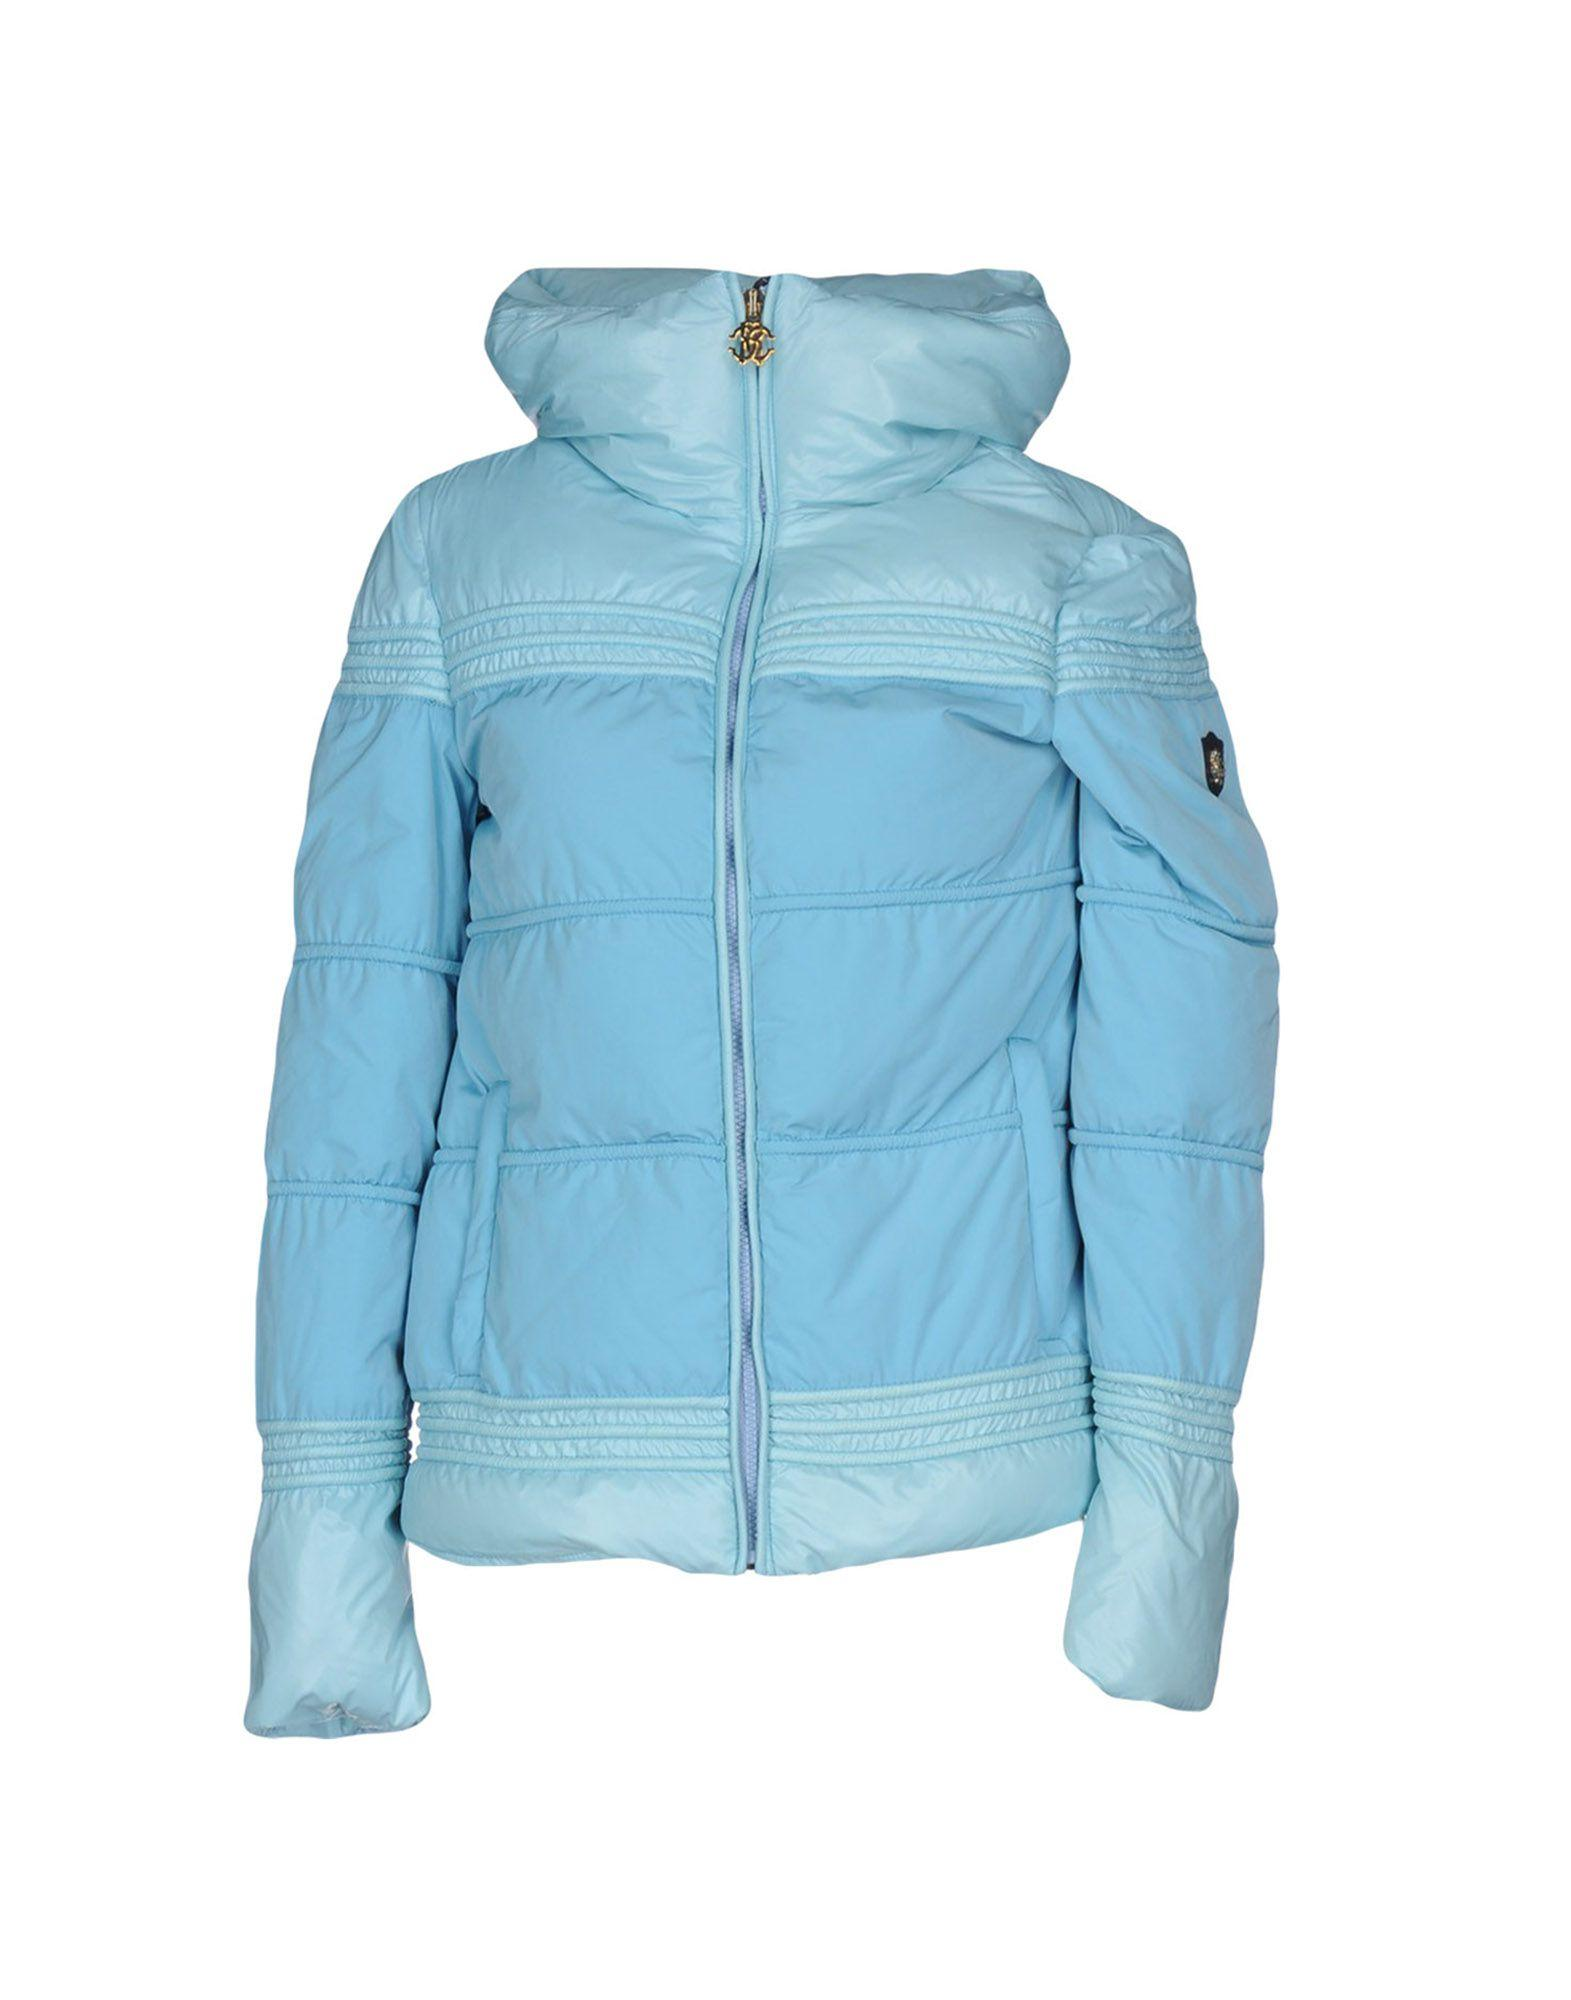 Roberto Cavalli Gym Down Jackets In Sky Blue